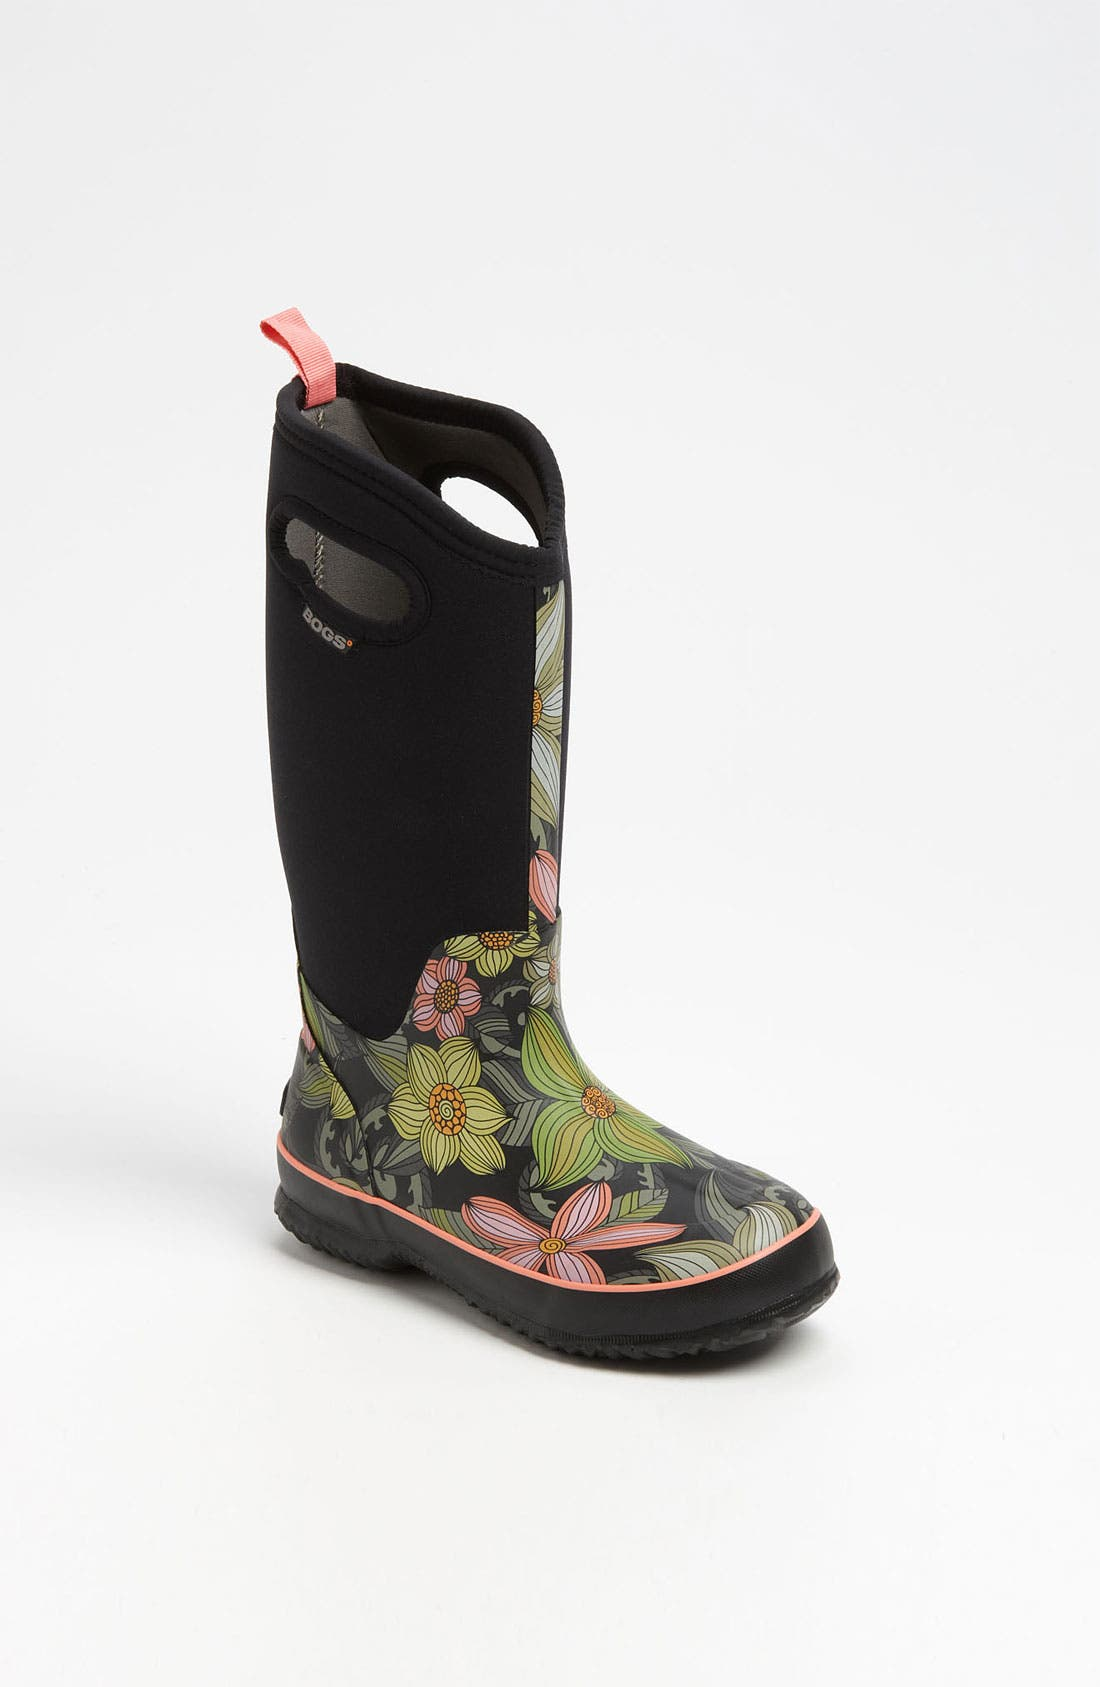 Alternate Image 1 Selected - Bogs 'Classic High Stargazer' Rain Boot